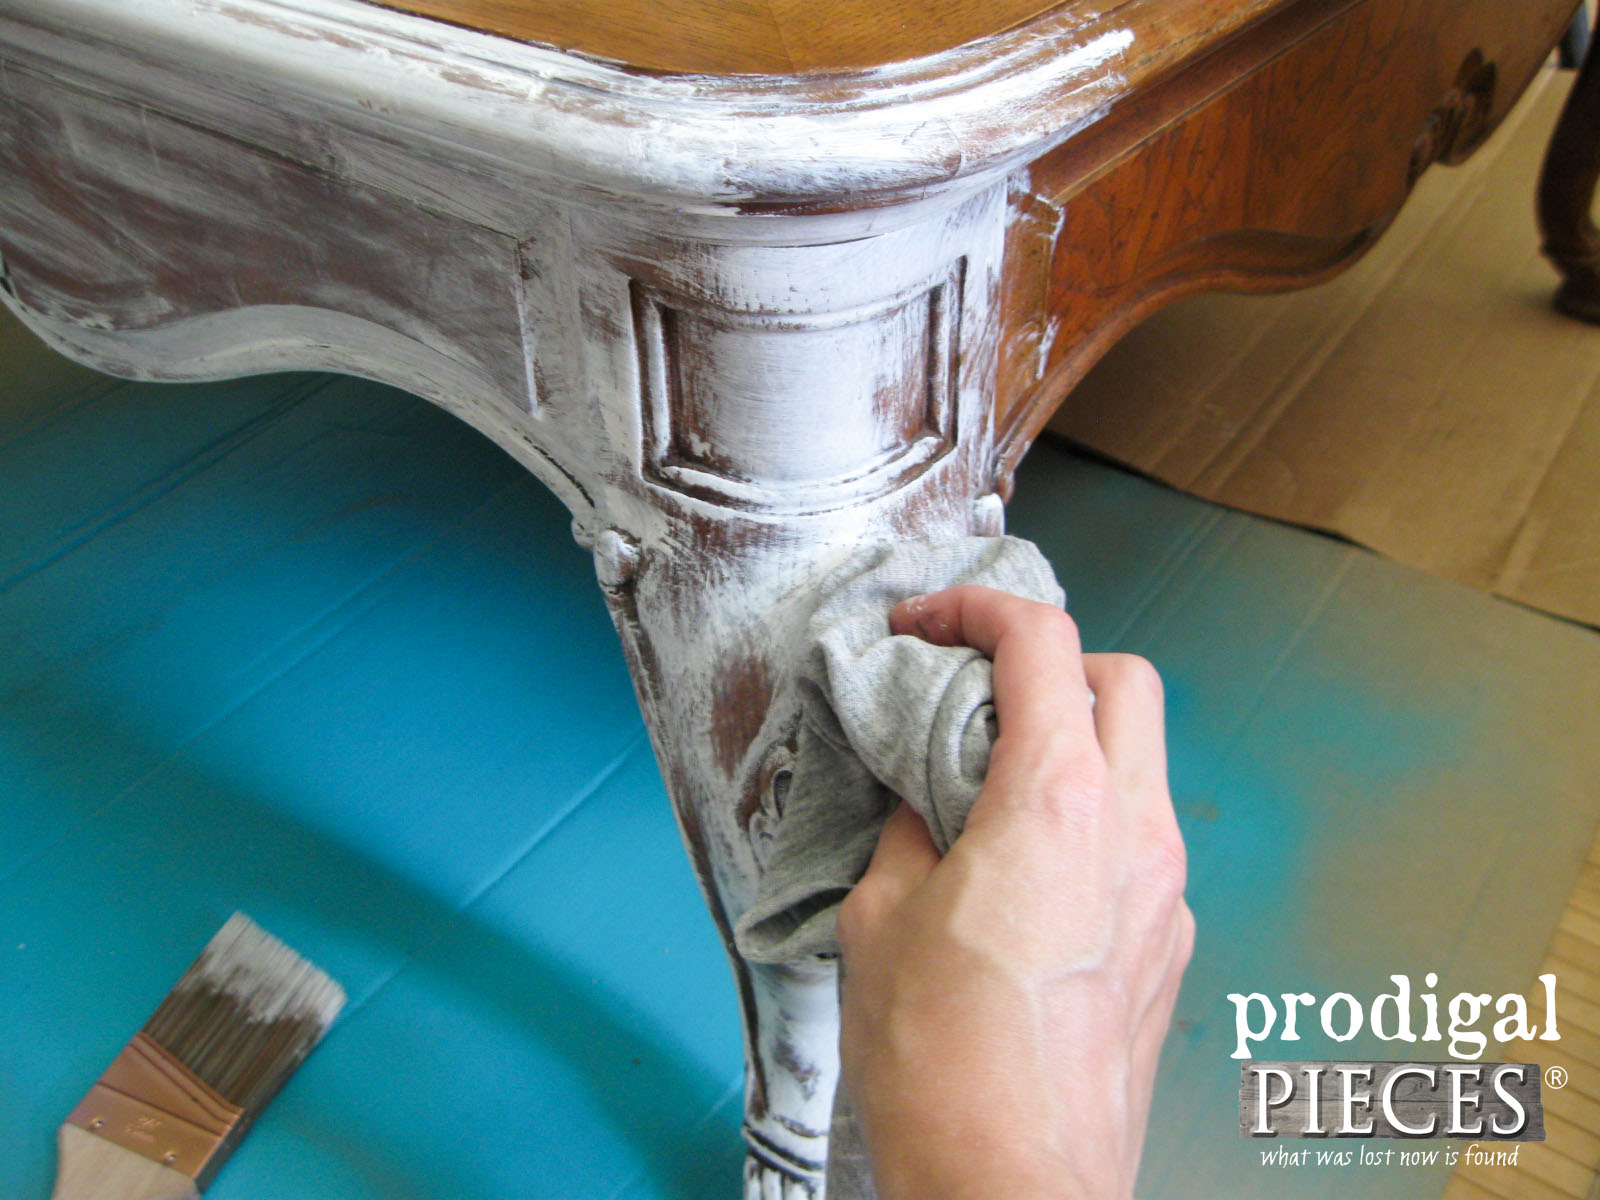 Whitewashing Coffee Table Legs | Prodigal Pieces | prodigalpieces.com